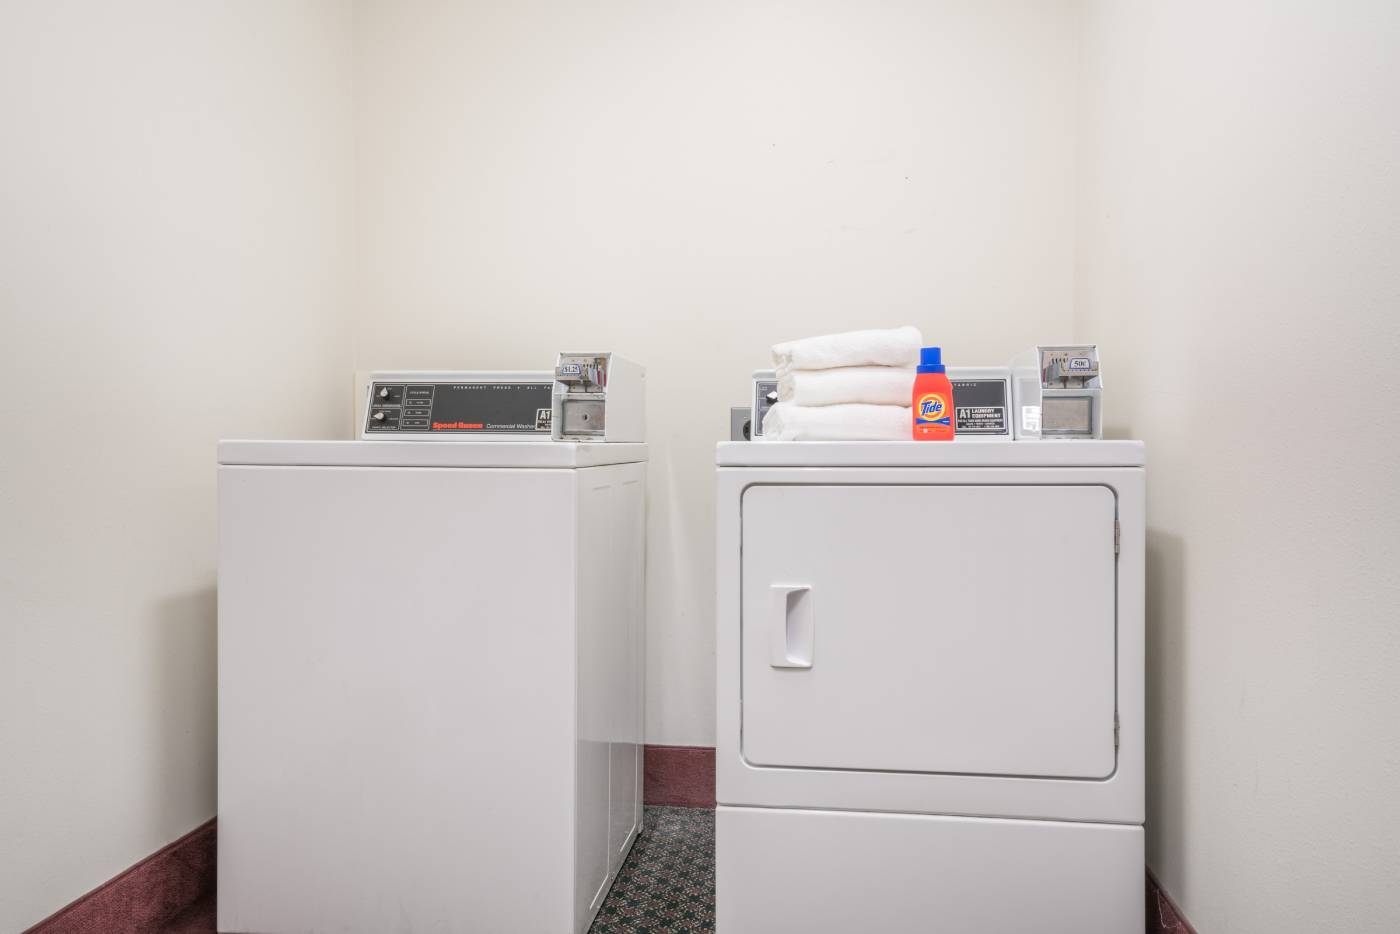 Governors' Inn Laundry